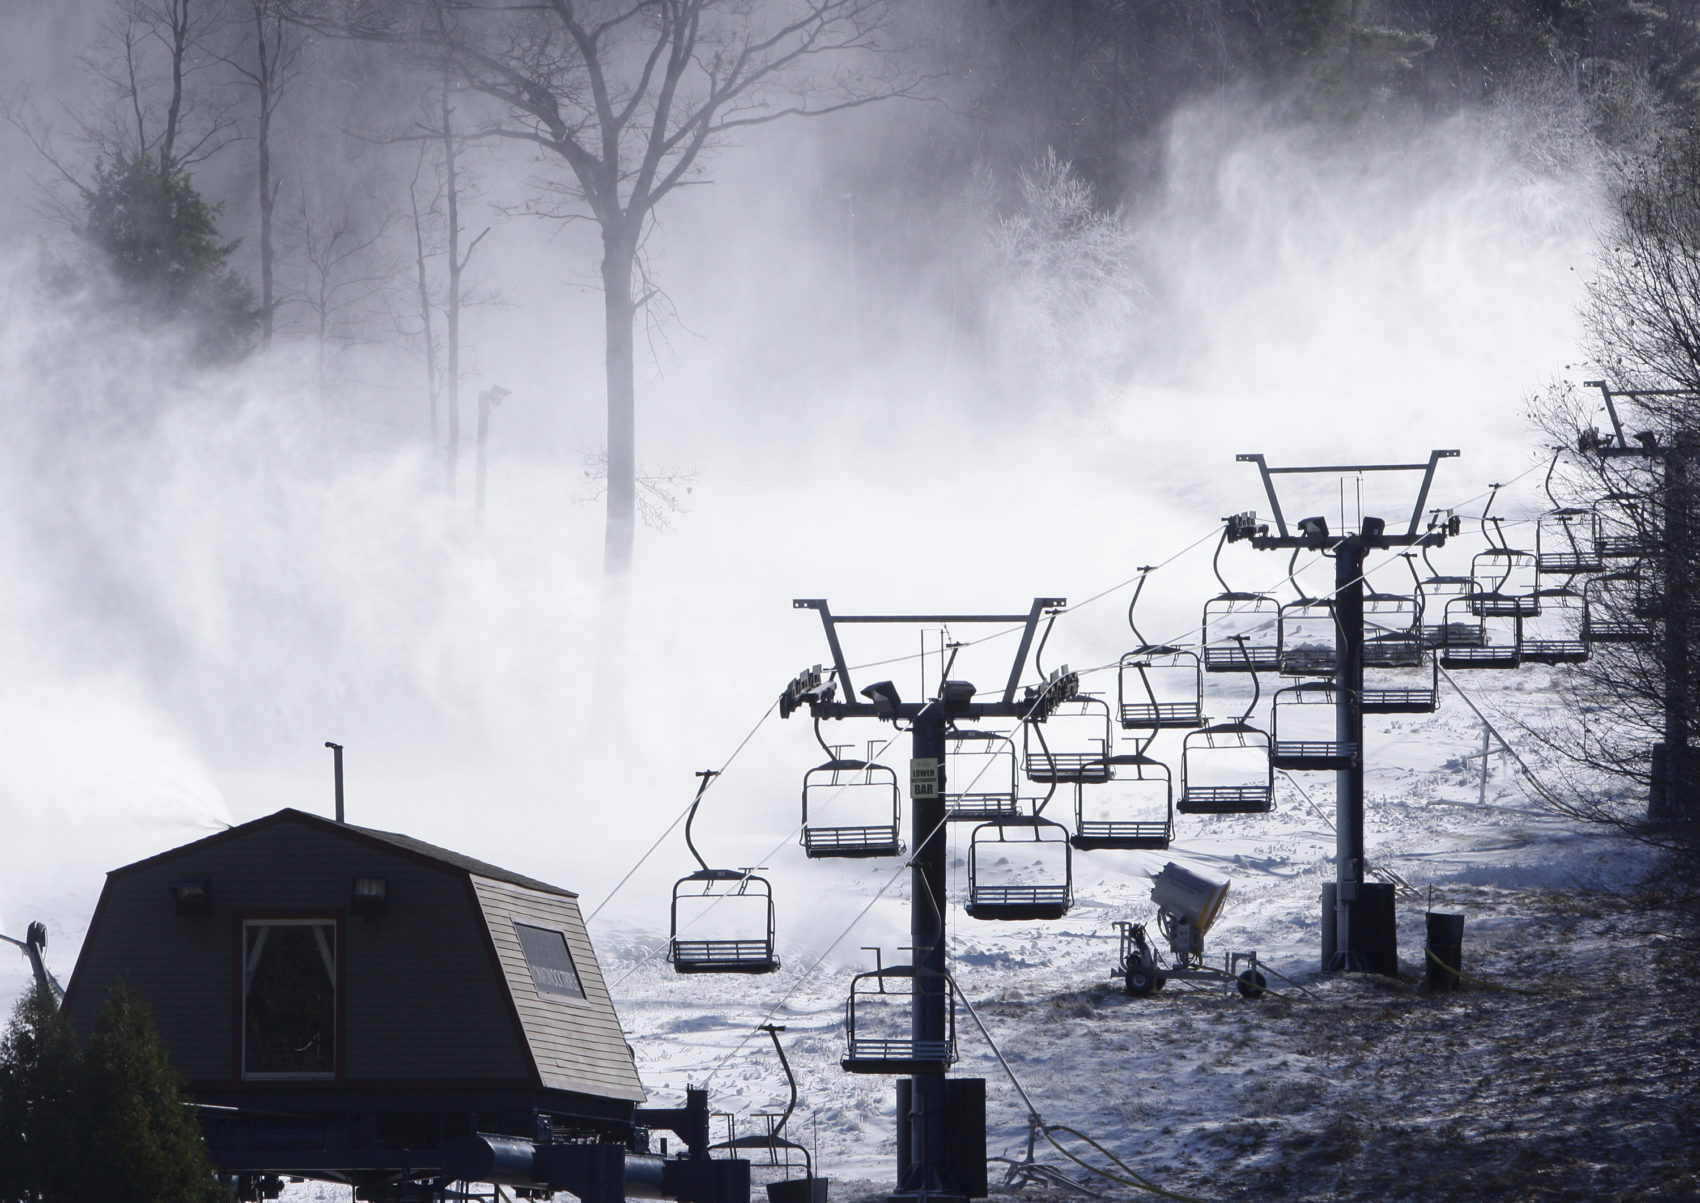 $20,000 Electrical Bill: After Expensive Snow-Making, Mass. Ski Resorts Welcome Storm